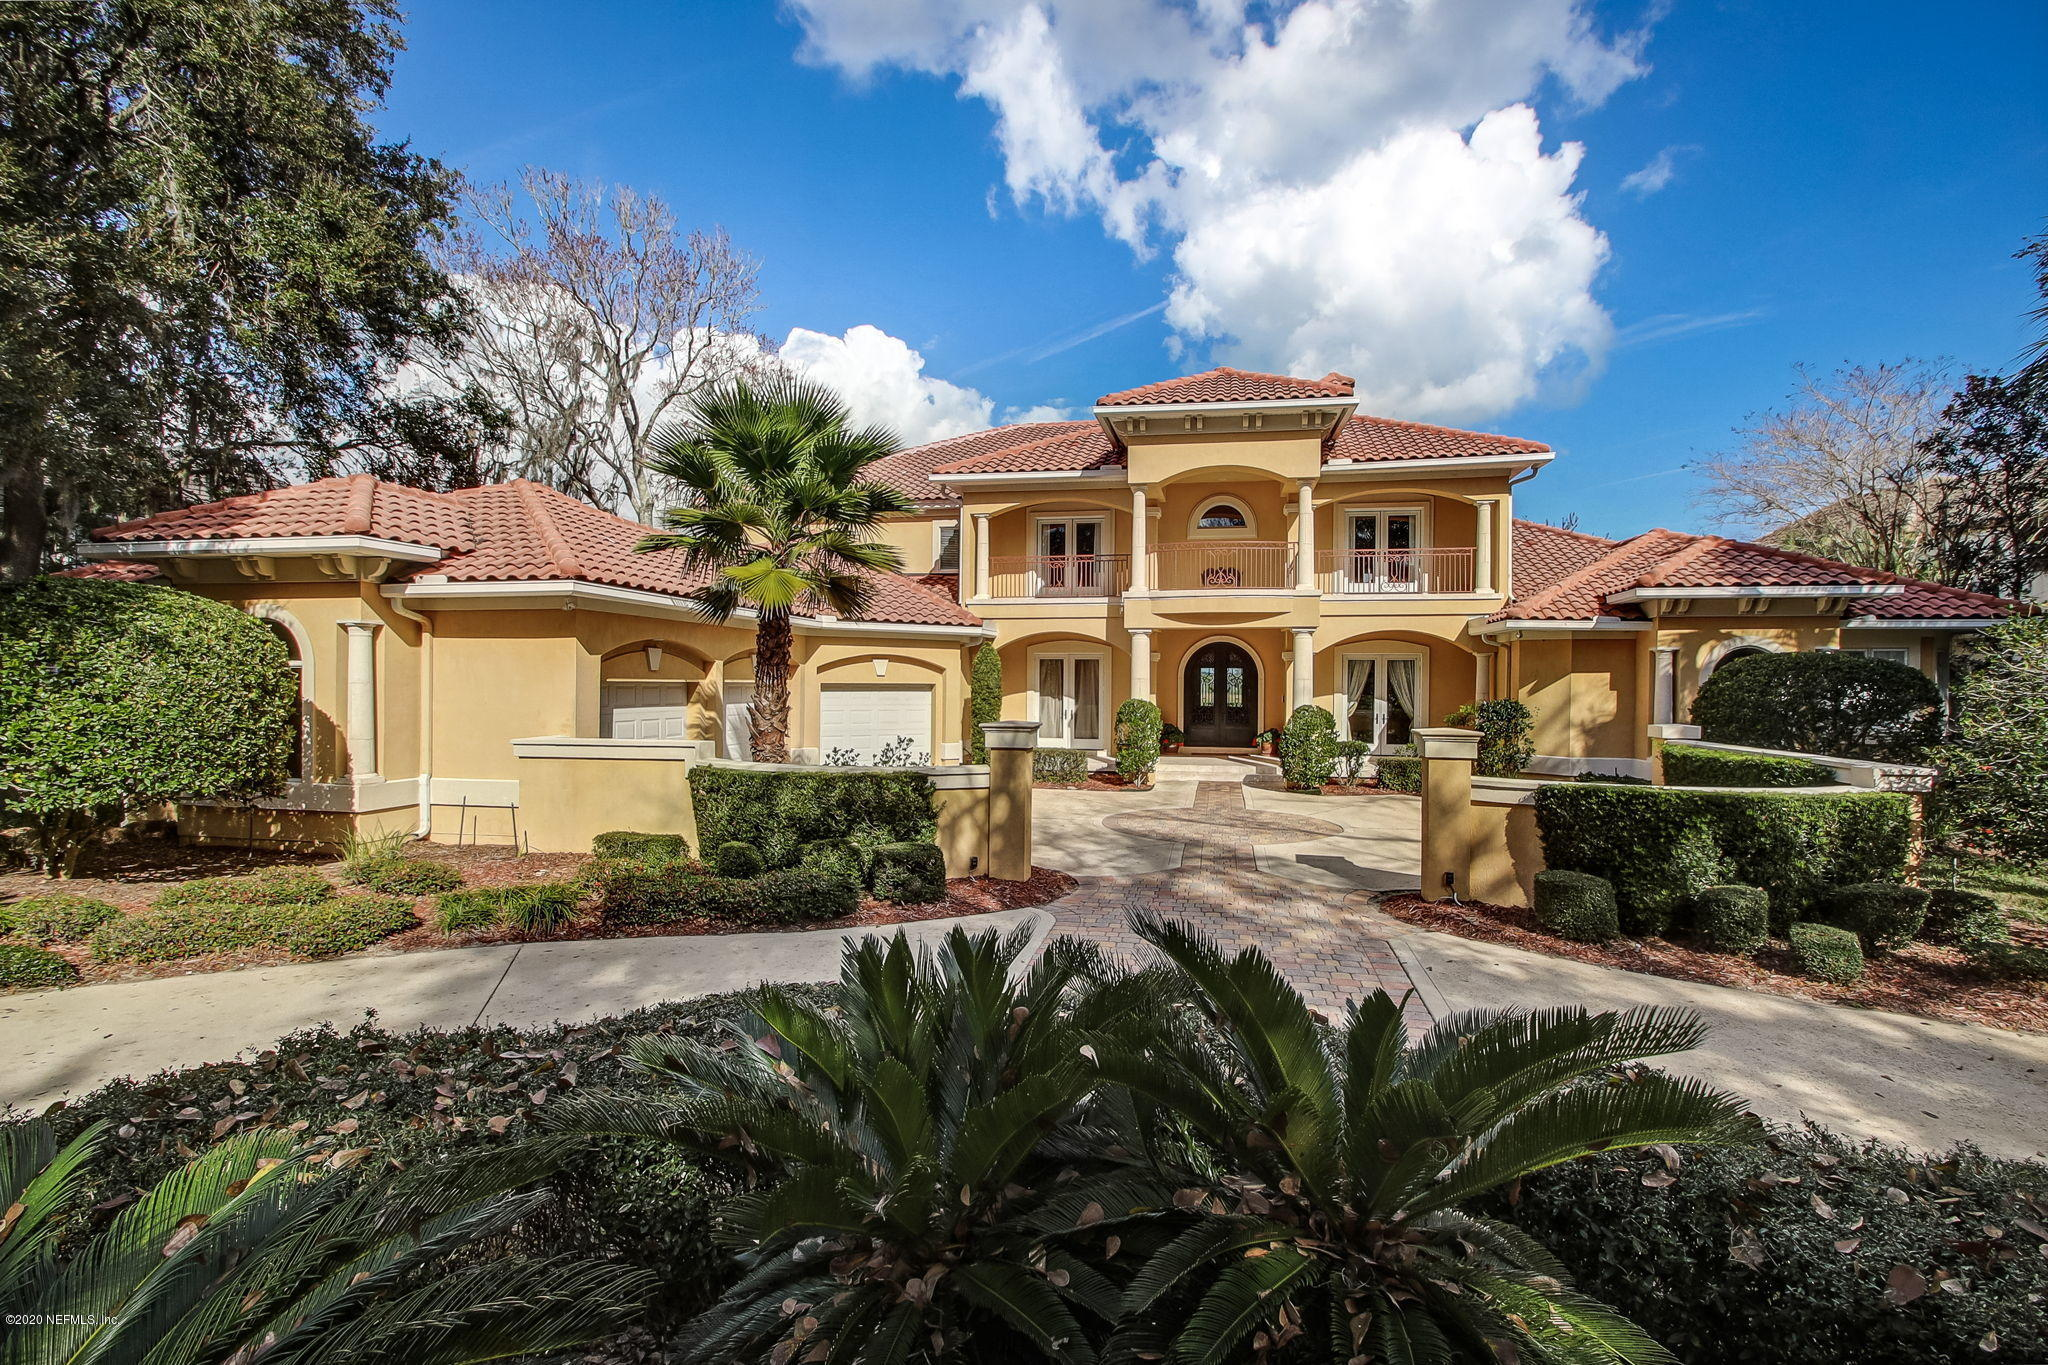 24600 HARBOUR VIEW, PONTE VEDRA BEACH, FLORIDA 32082, 5 Bedrooms Bedrooms, ,6 BathroomsBathrooms,Residential,For sale,HARBOUR VIEW,1030196